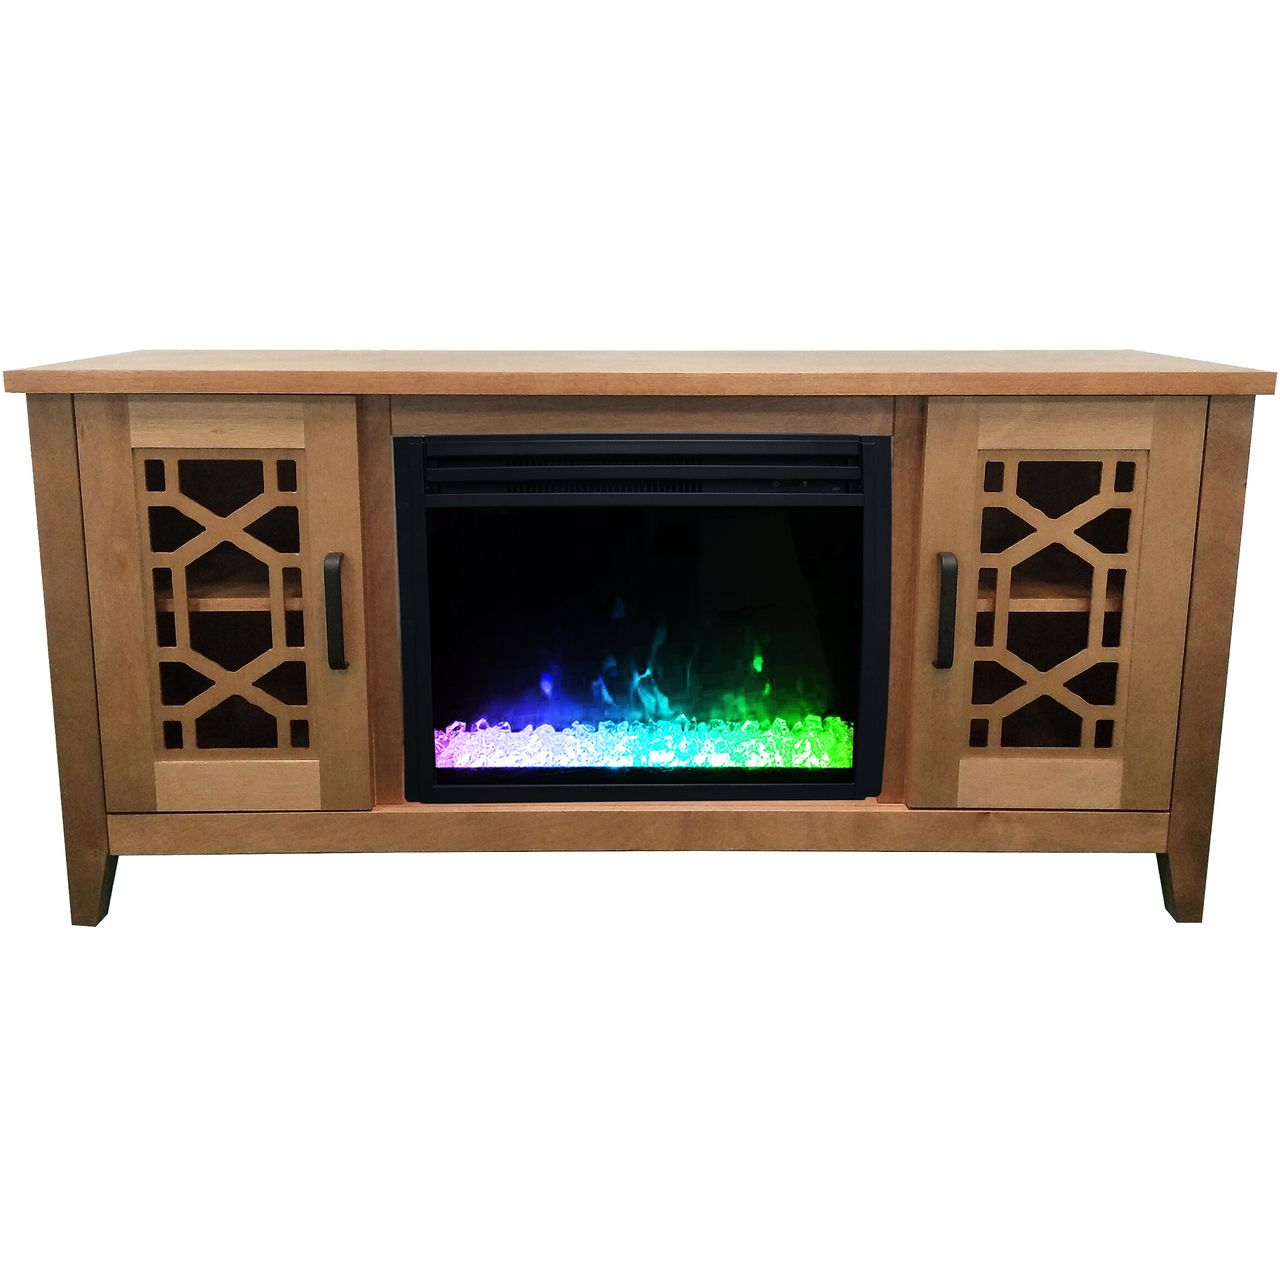 "Cambridge 56"" Stardust Electric Fireplace with Crystals - Natural Wood"